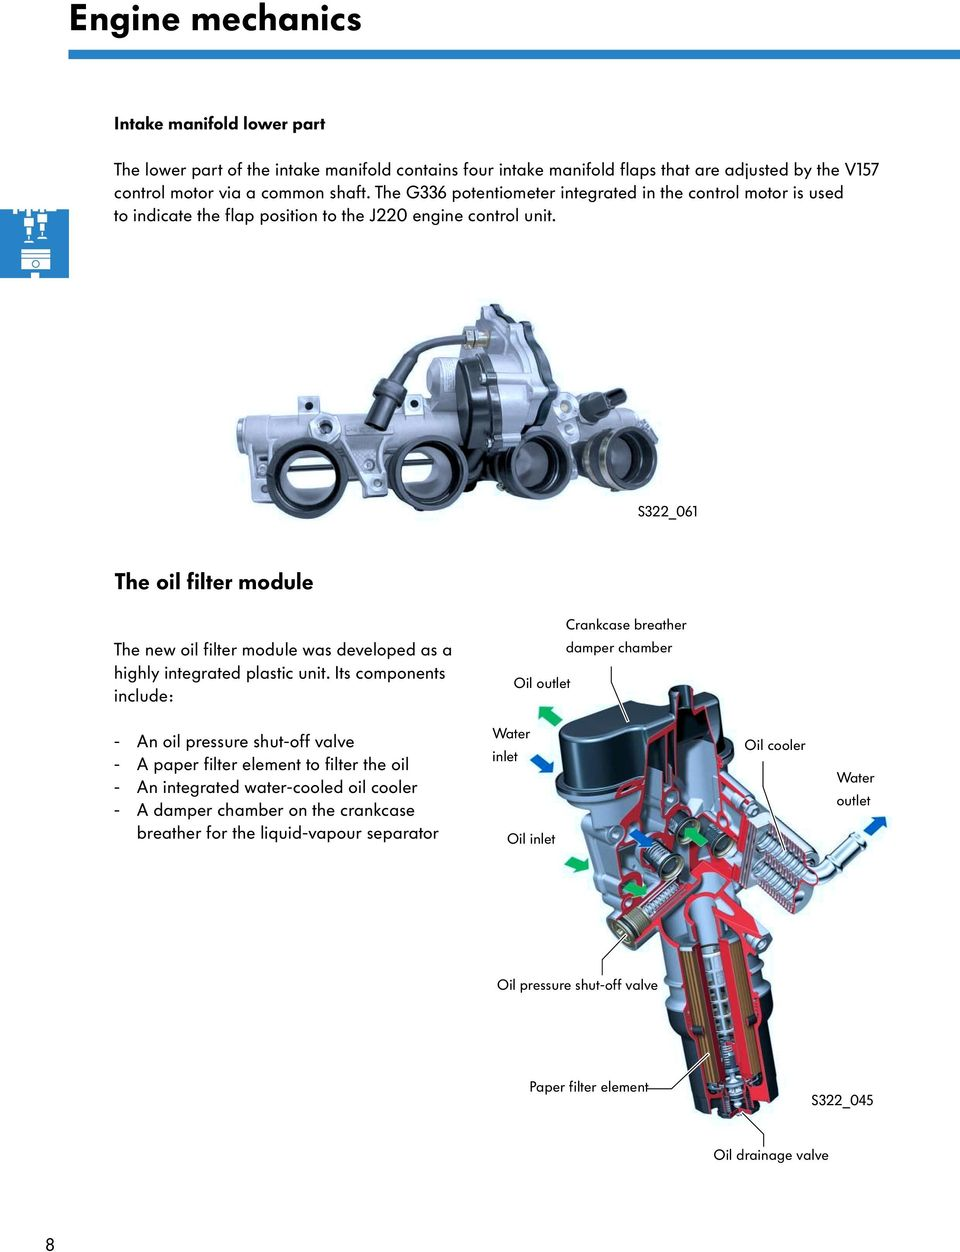 The 20l Fsi Engine With 4 Valve Technology Pdf Audi 2000 2 8l Oil Diagram S322 061 Filter Module Crankcase Breather New Was Developed As A